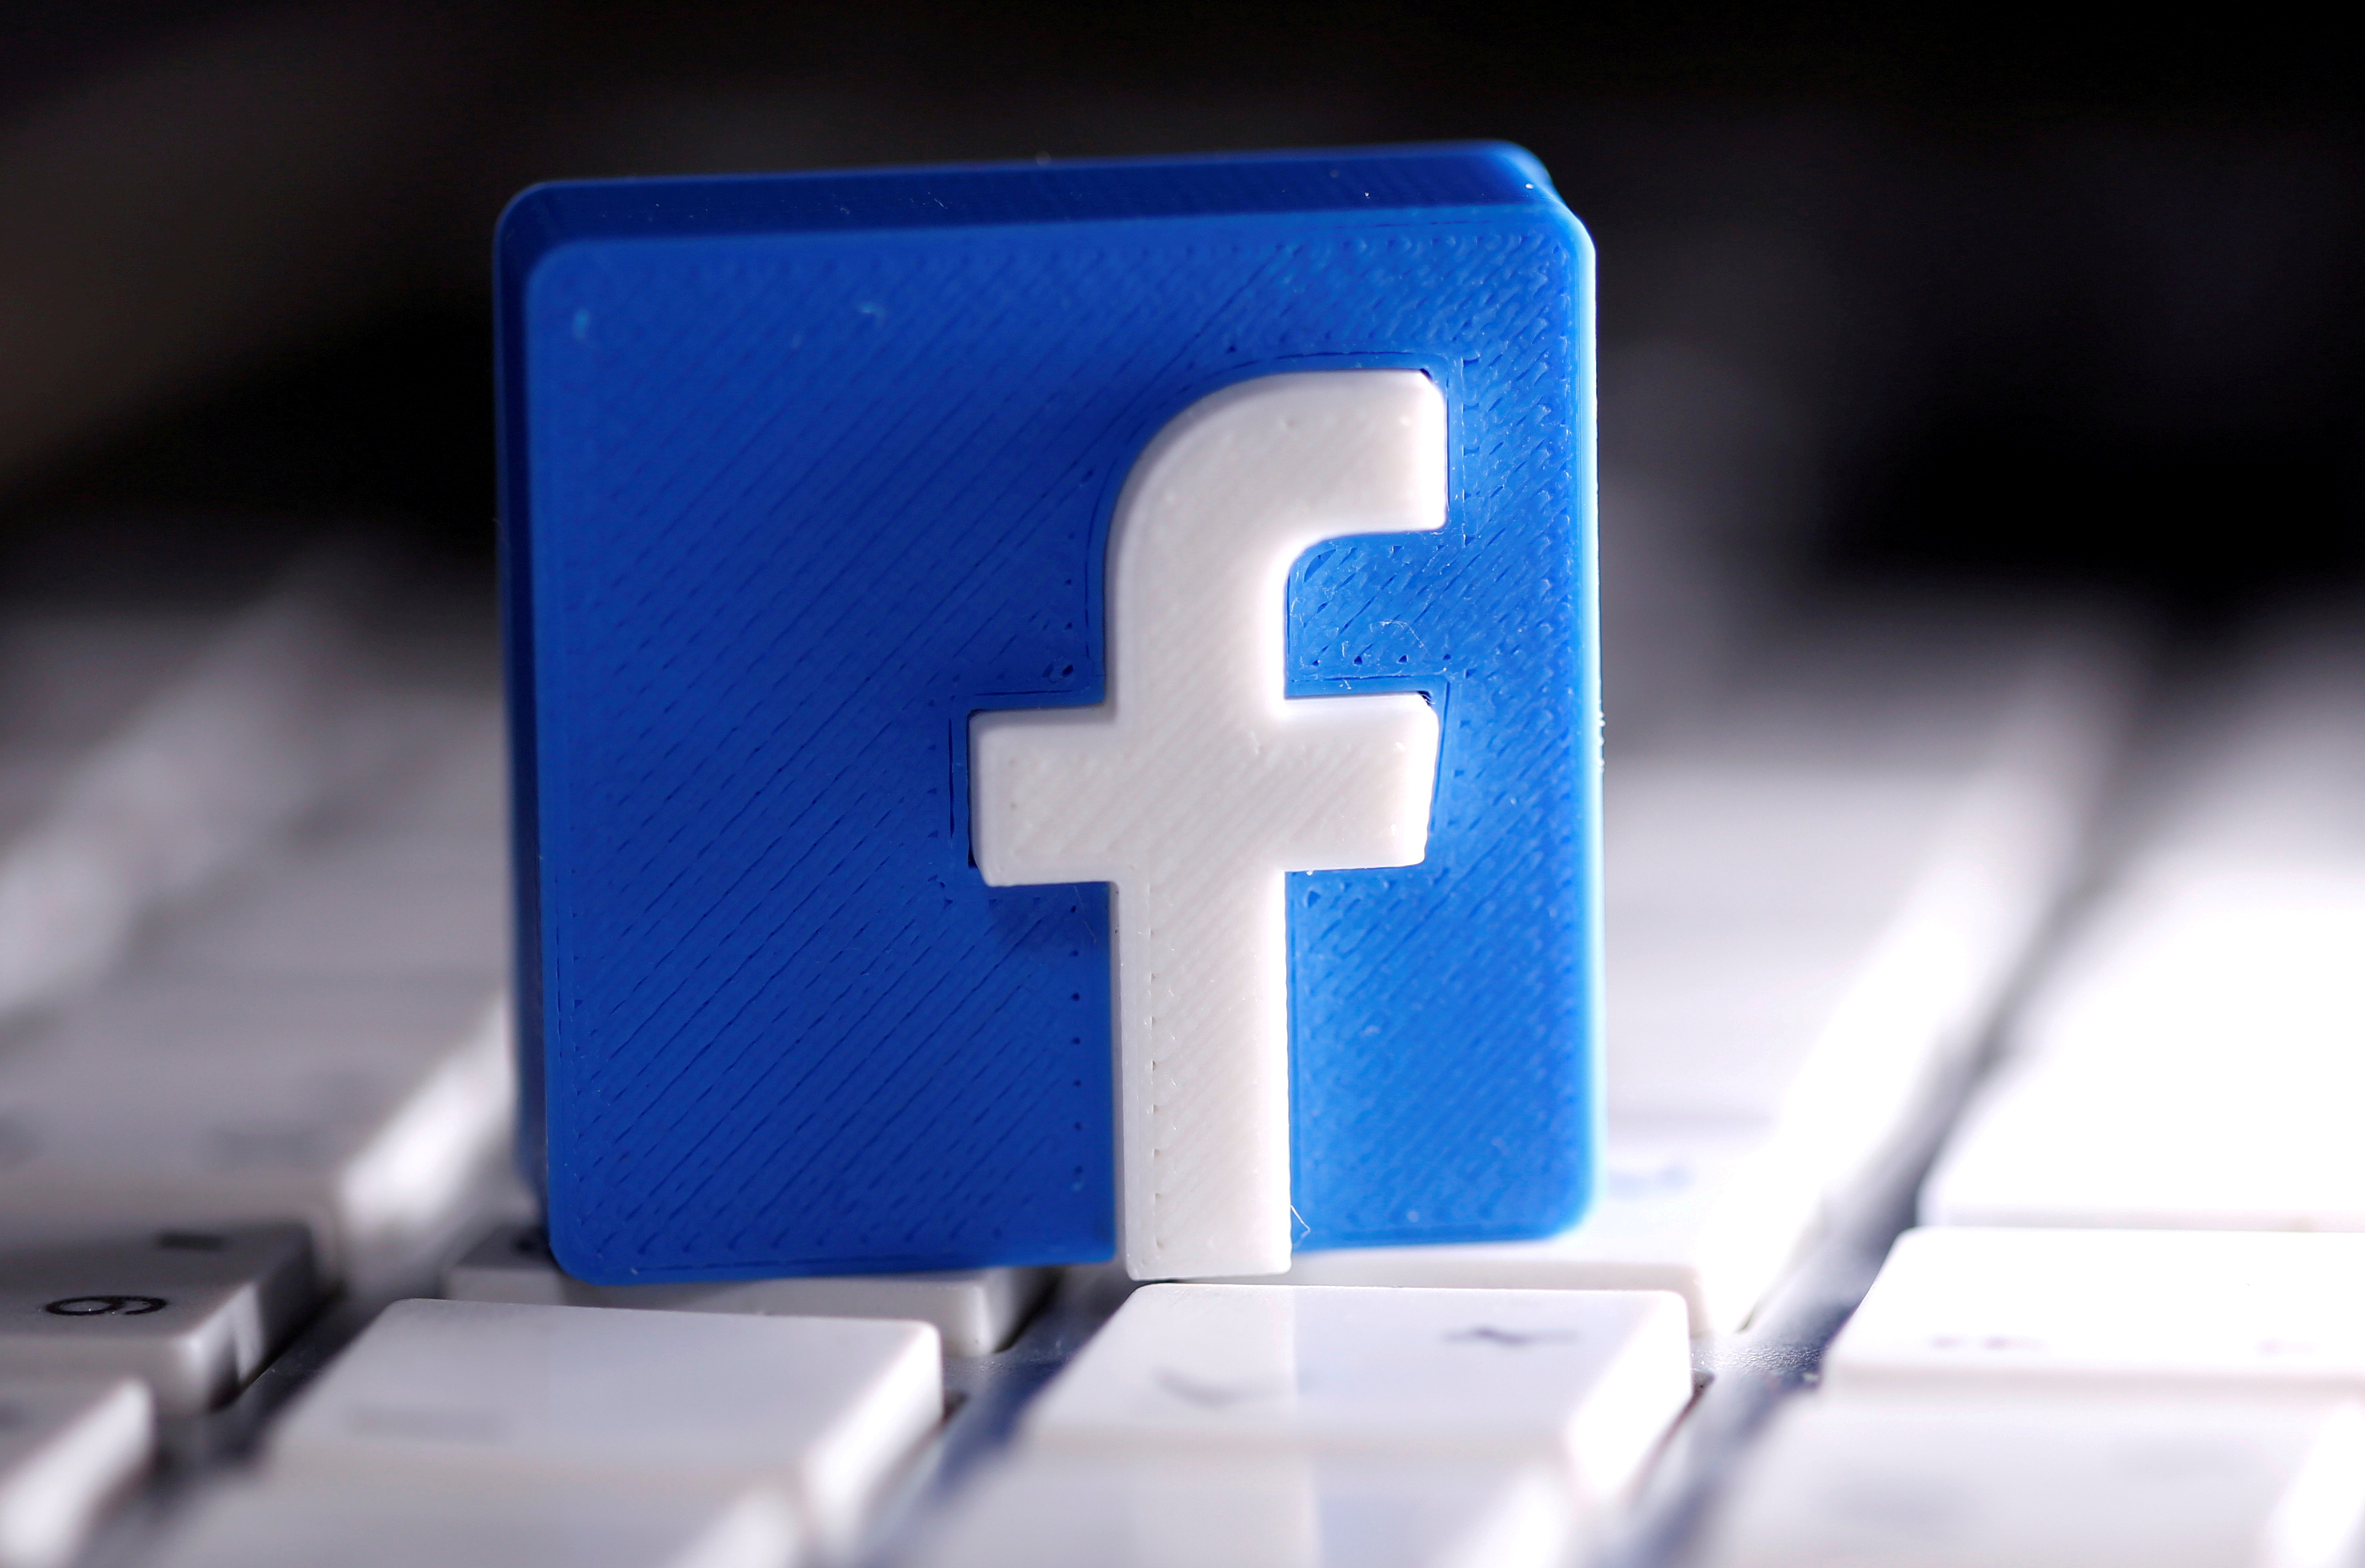 A 3D-printed Facebook logo is seen placed on a keyboard, March 25, 2020. REUTERS/Dado Ruvic